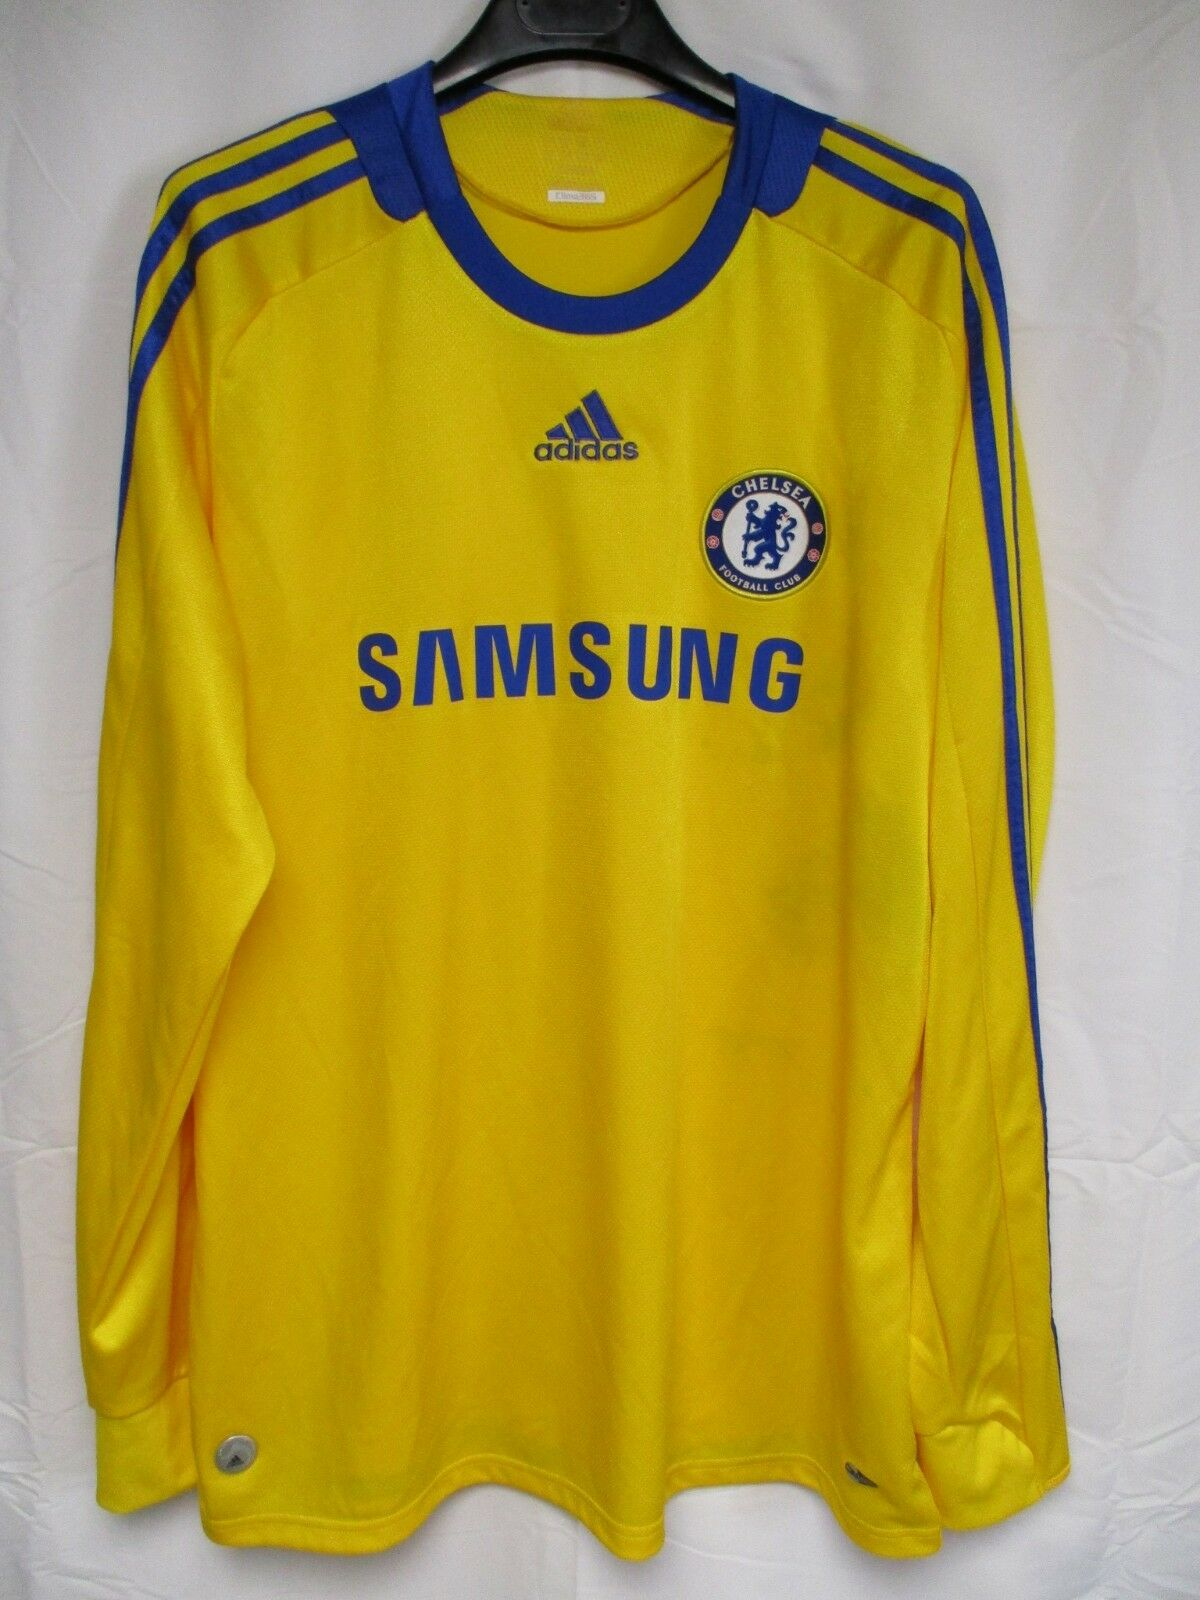 Maillot CHELSEA 2009 ADIDAS vintage shirt manches longues L S third yellow XL